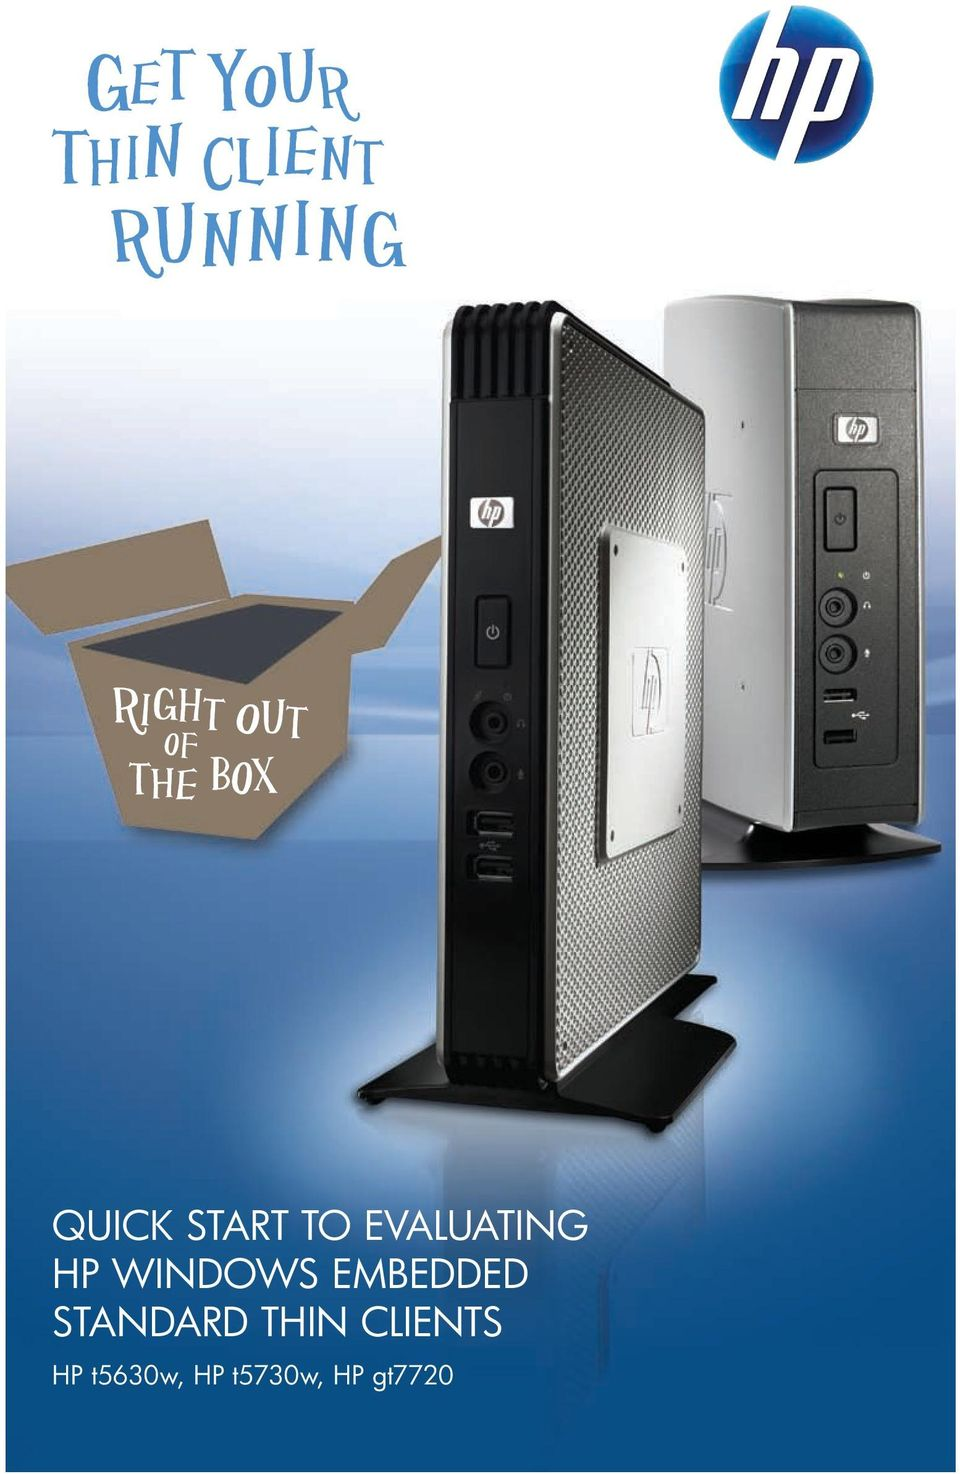 Download Driver: HP Compaq Thin Clients Windows Embedded Standard Image